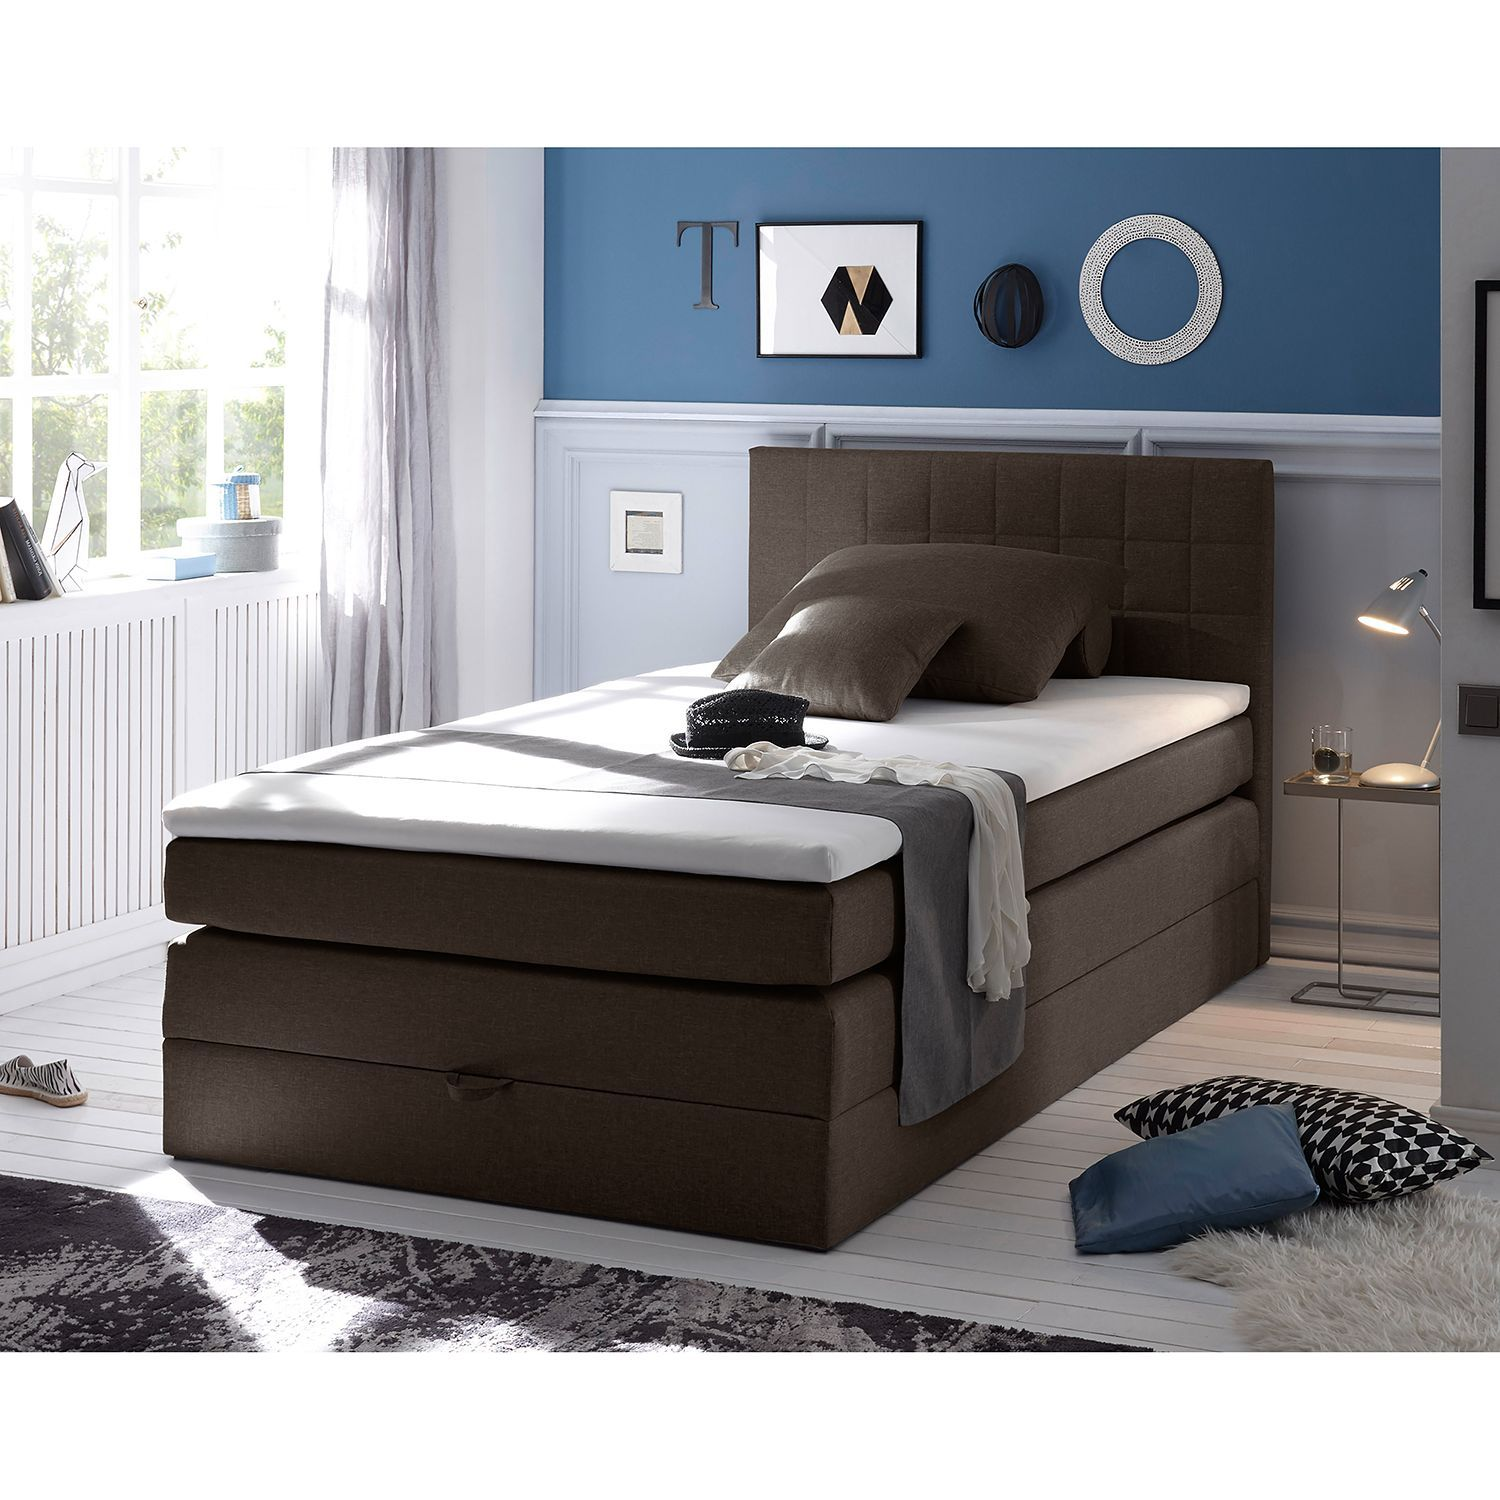 Boxspringbett Harvi (inkl. Topper)